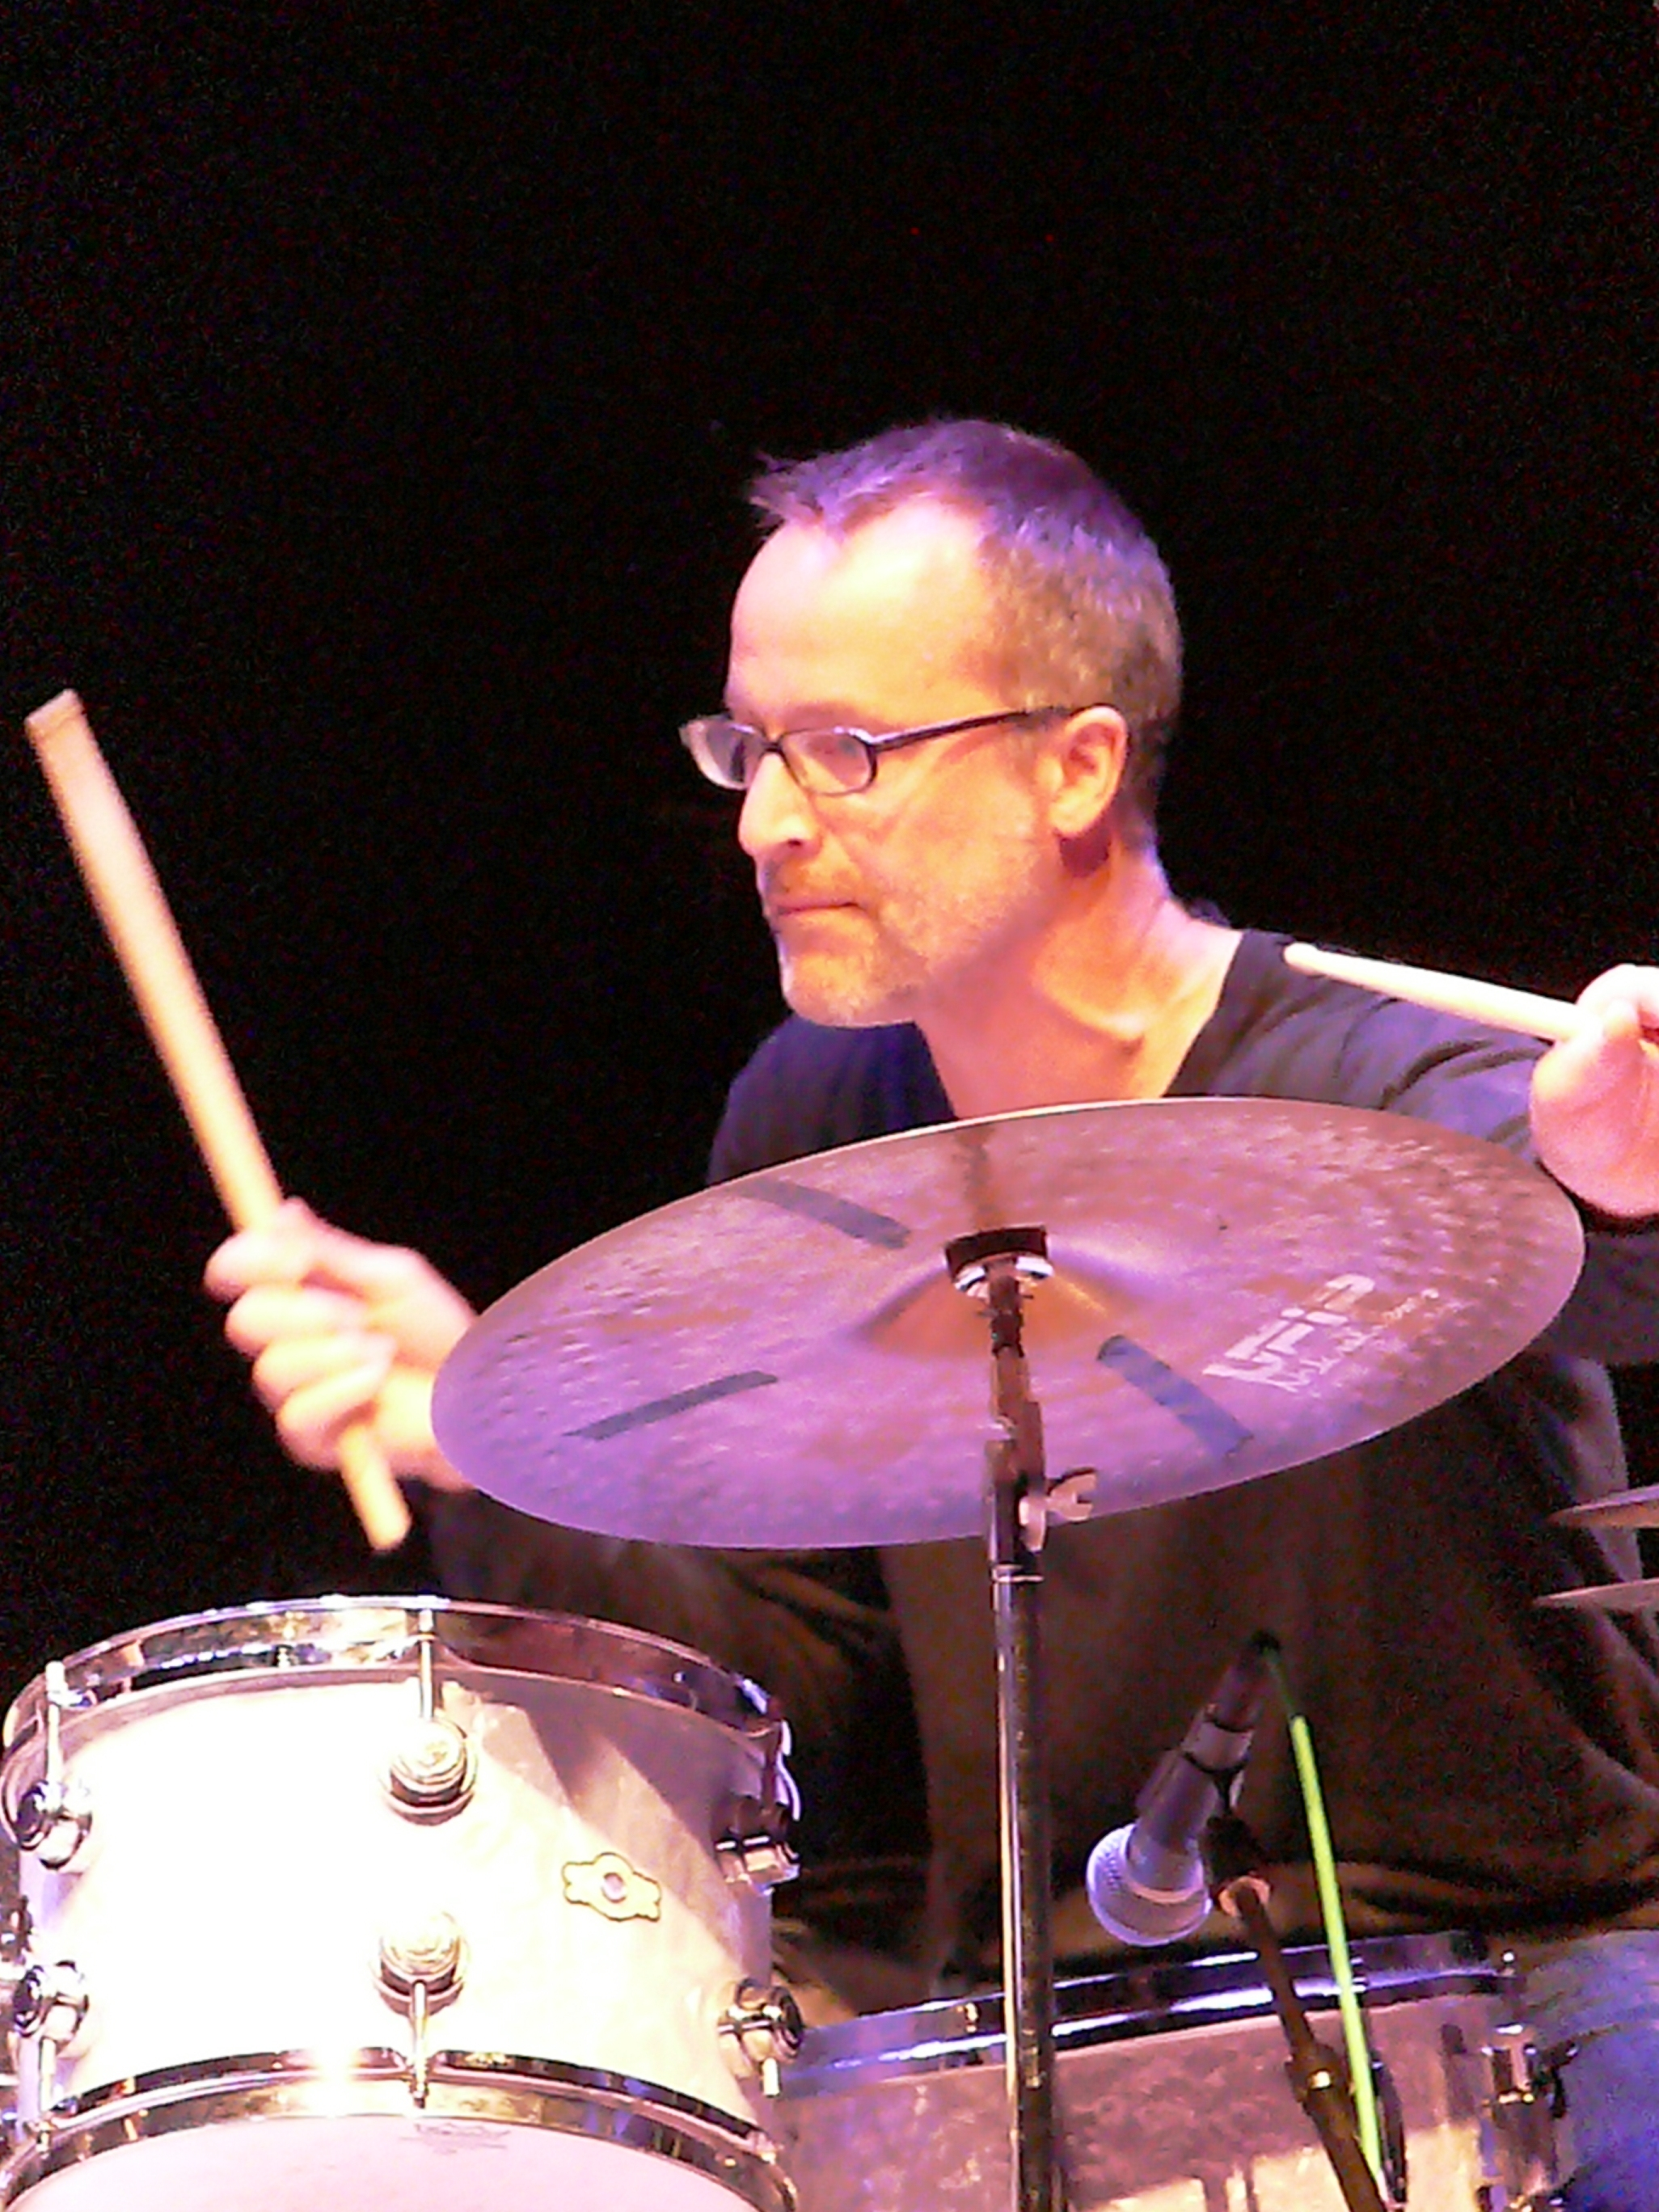 Michael Sarin at the Vision Festival, NYC in June 2012